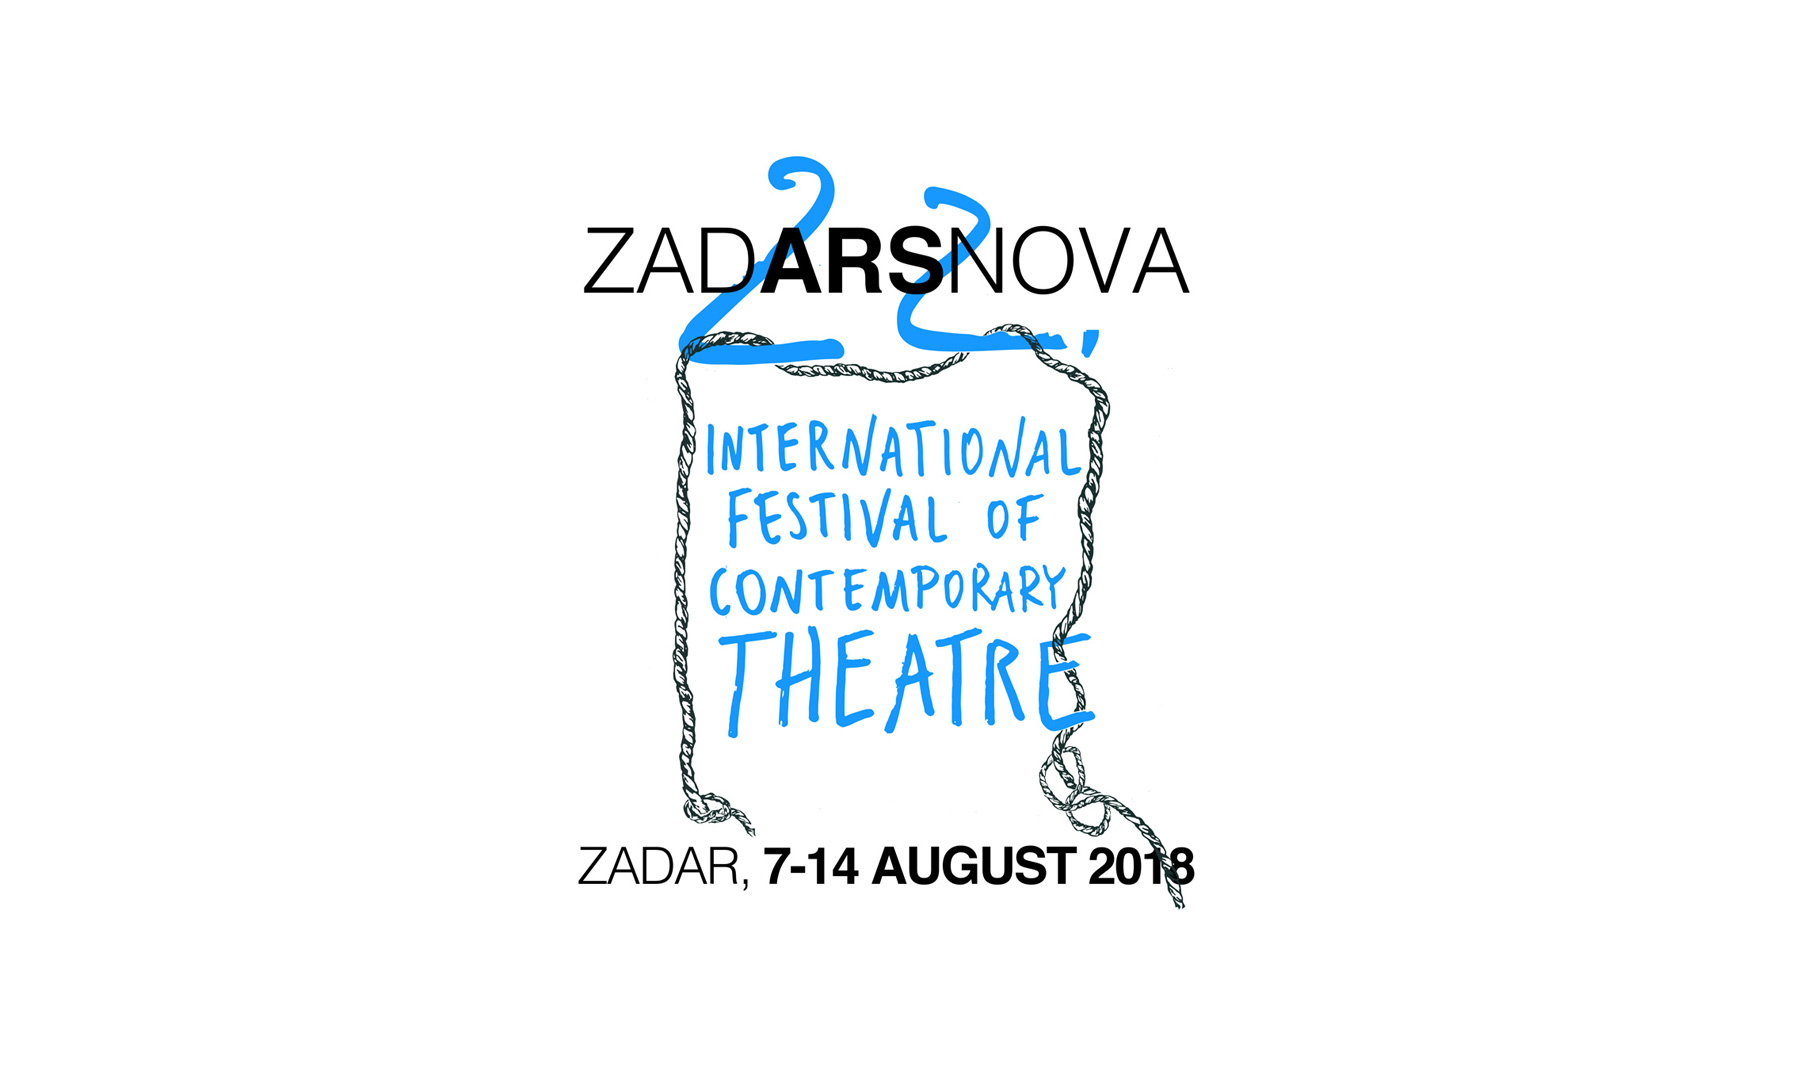 Zadarsnova 2018 - Zadarsnova Festival of Contemporary Theatre